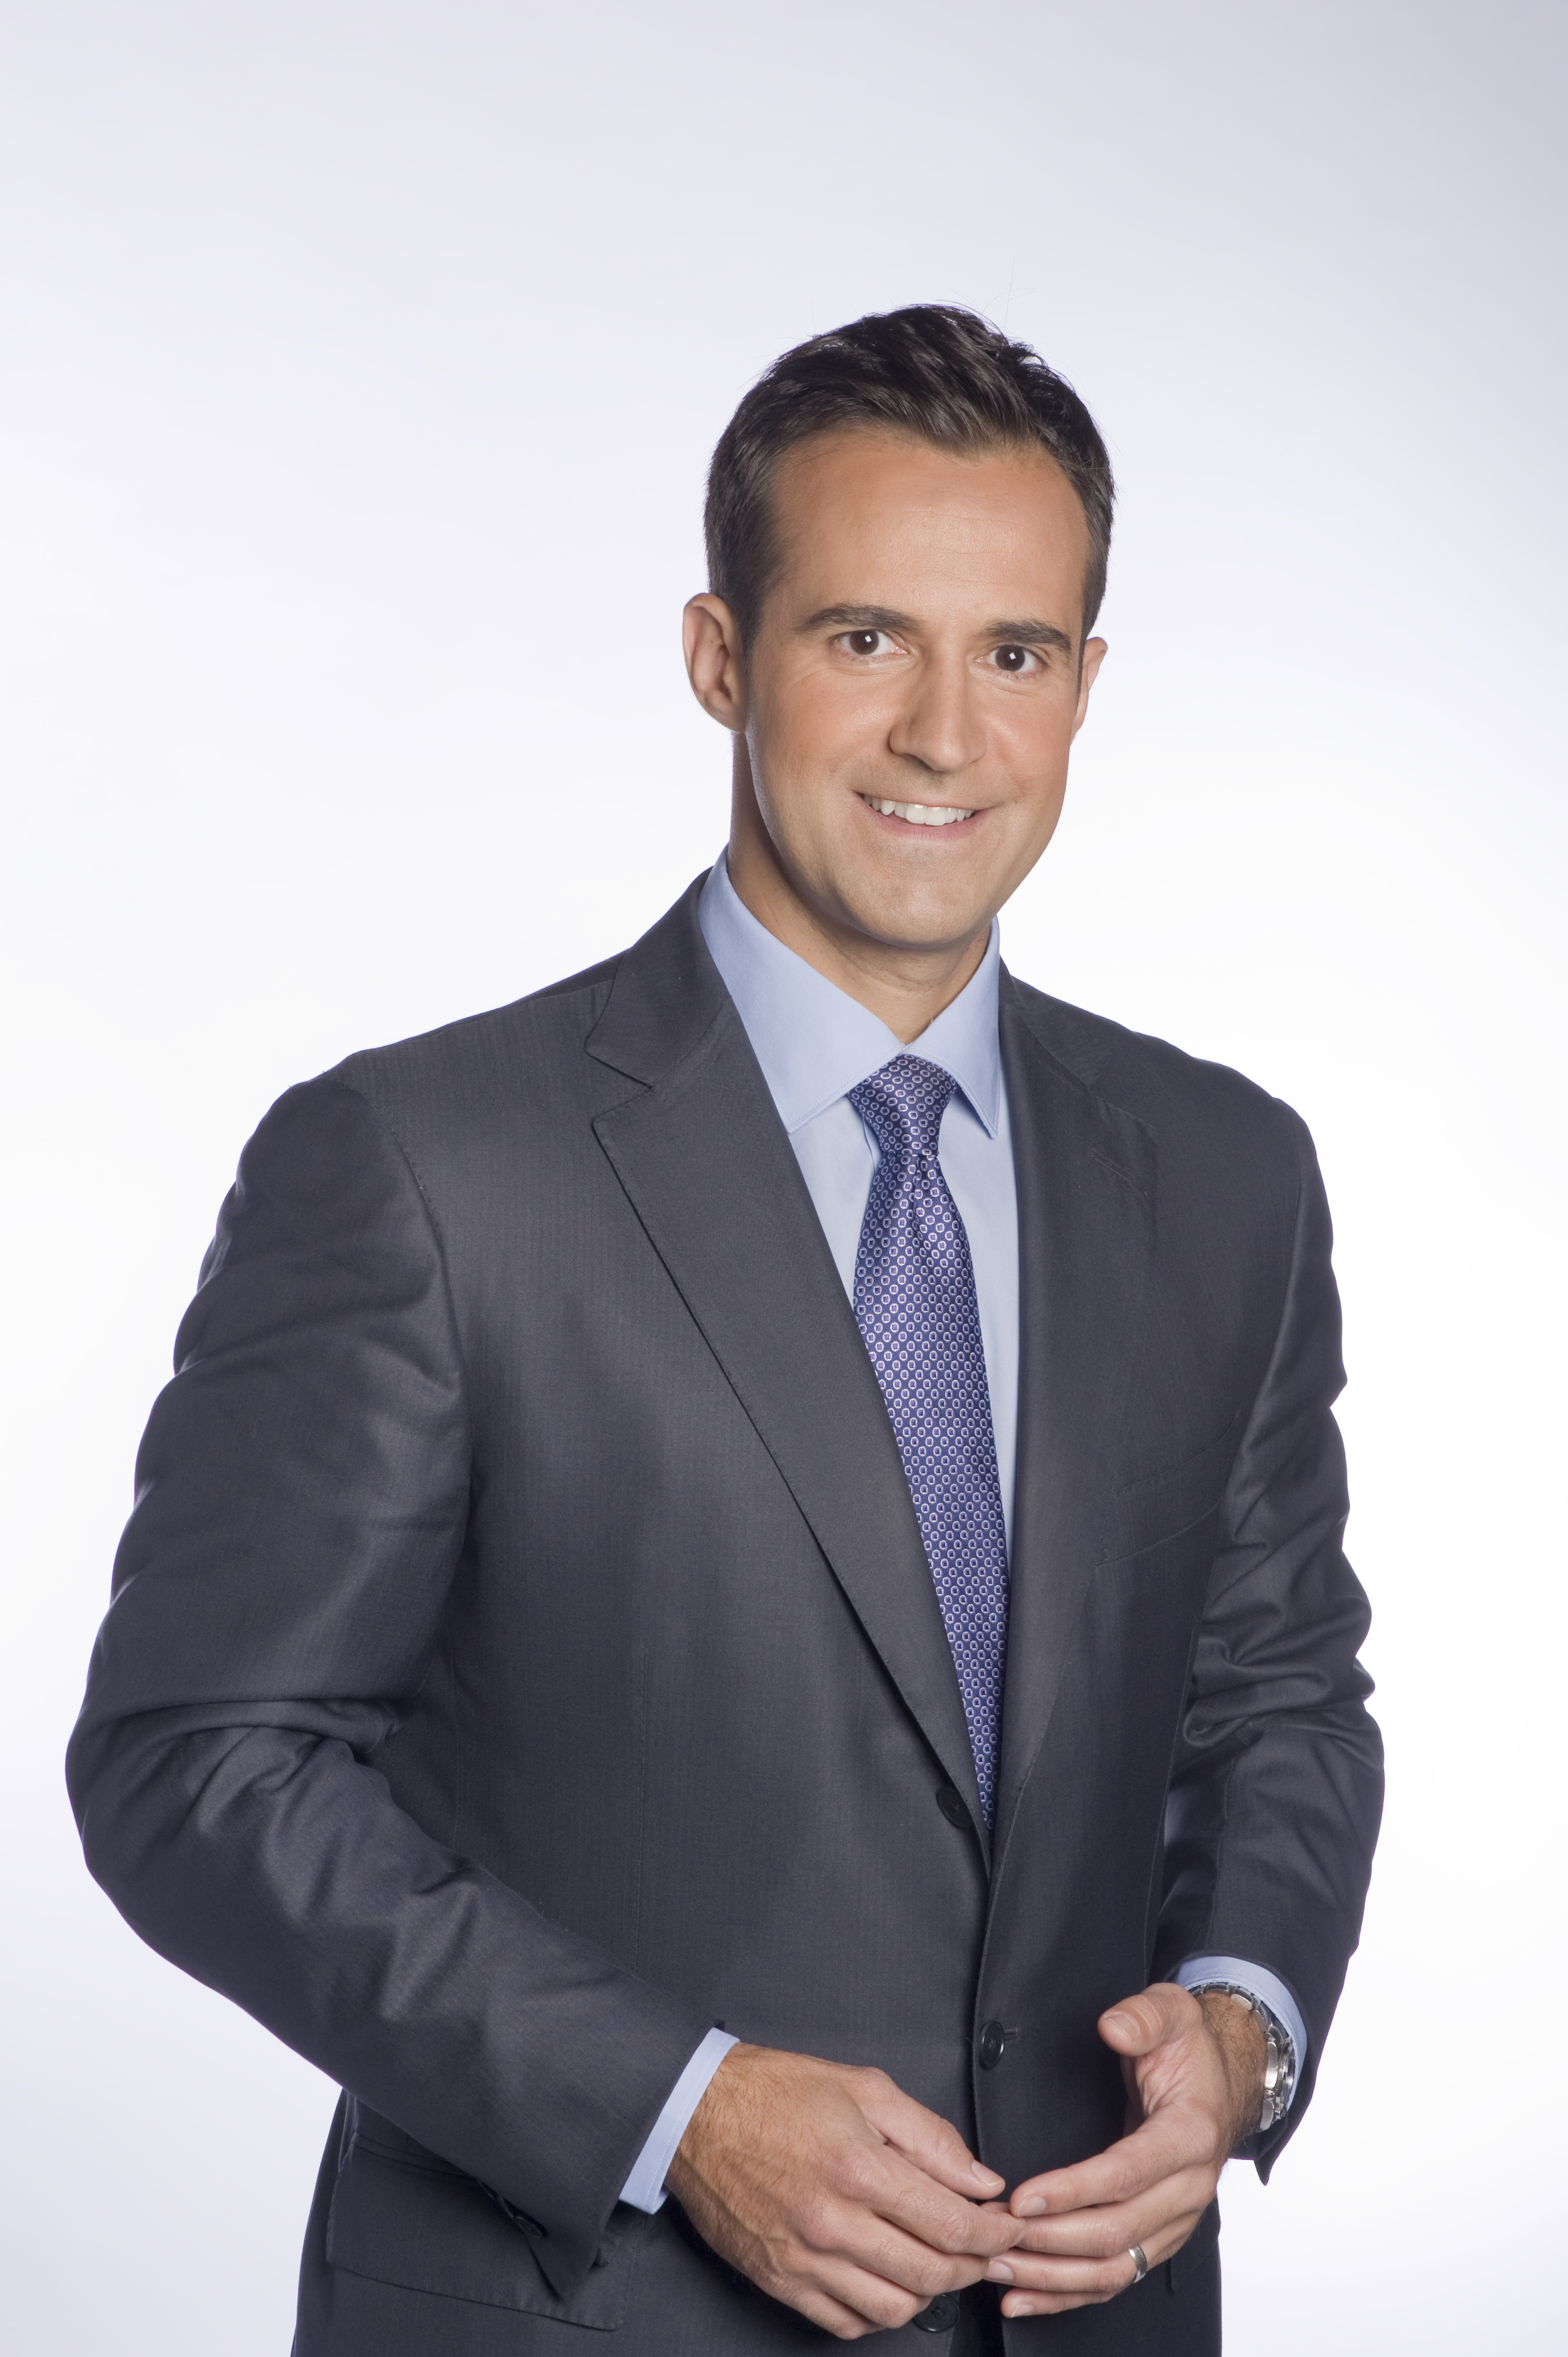 Wbz Tv News Anchor David Wade To Host 46th Annual Publicity Club Of